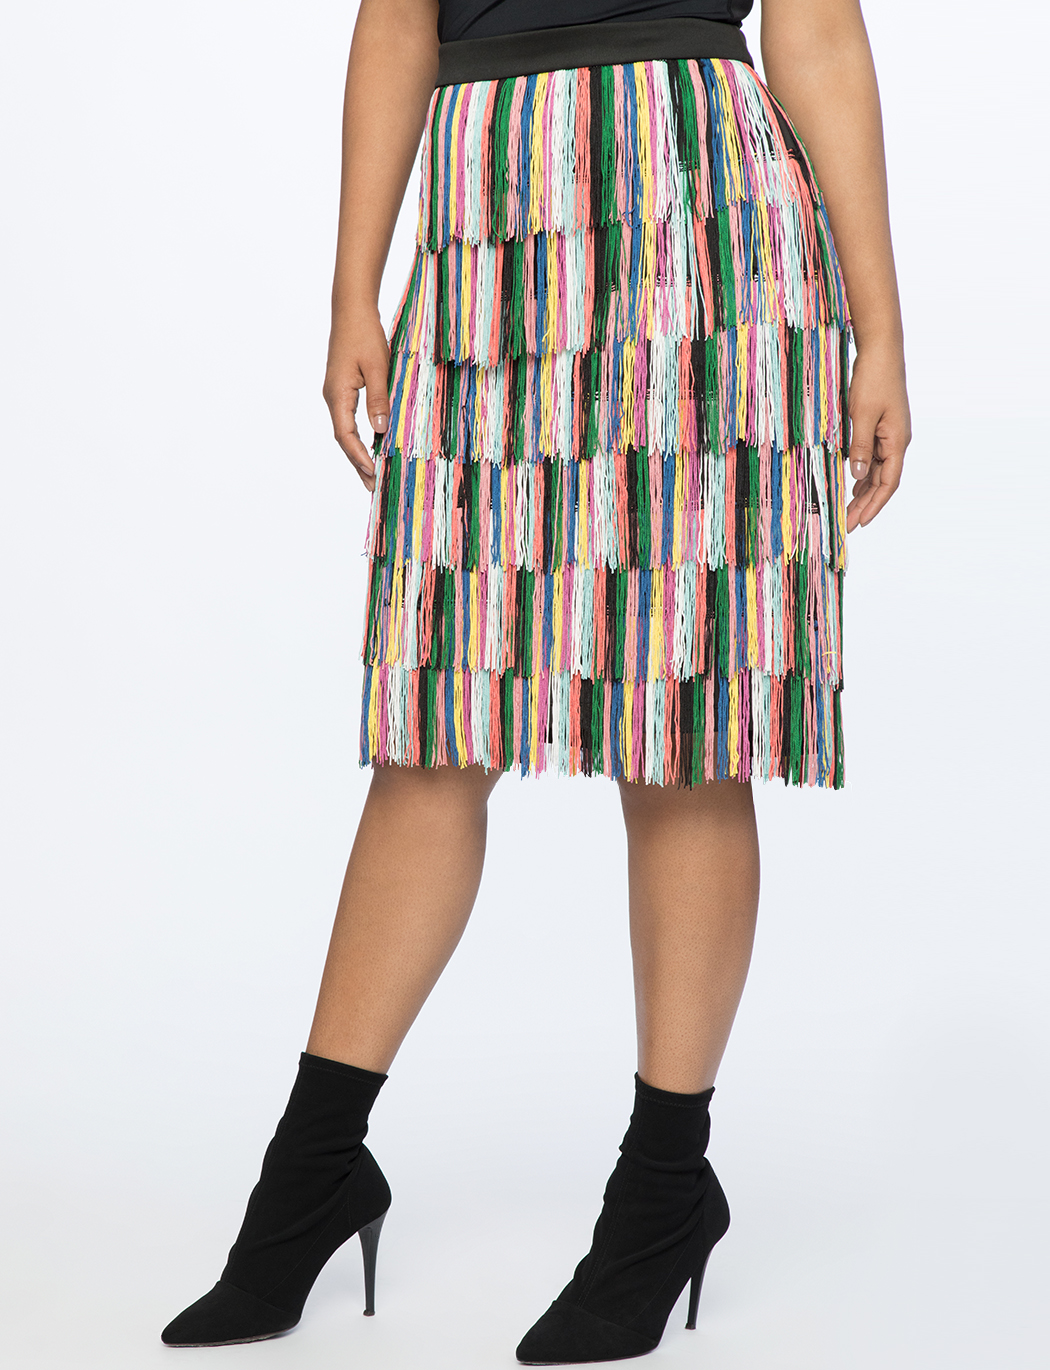 Rainbow Fringe Pencil Skirt